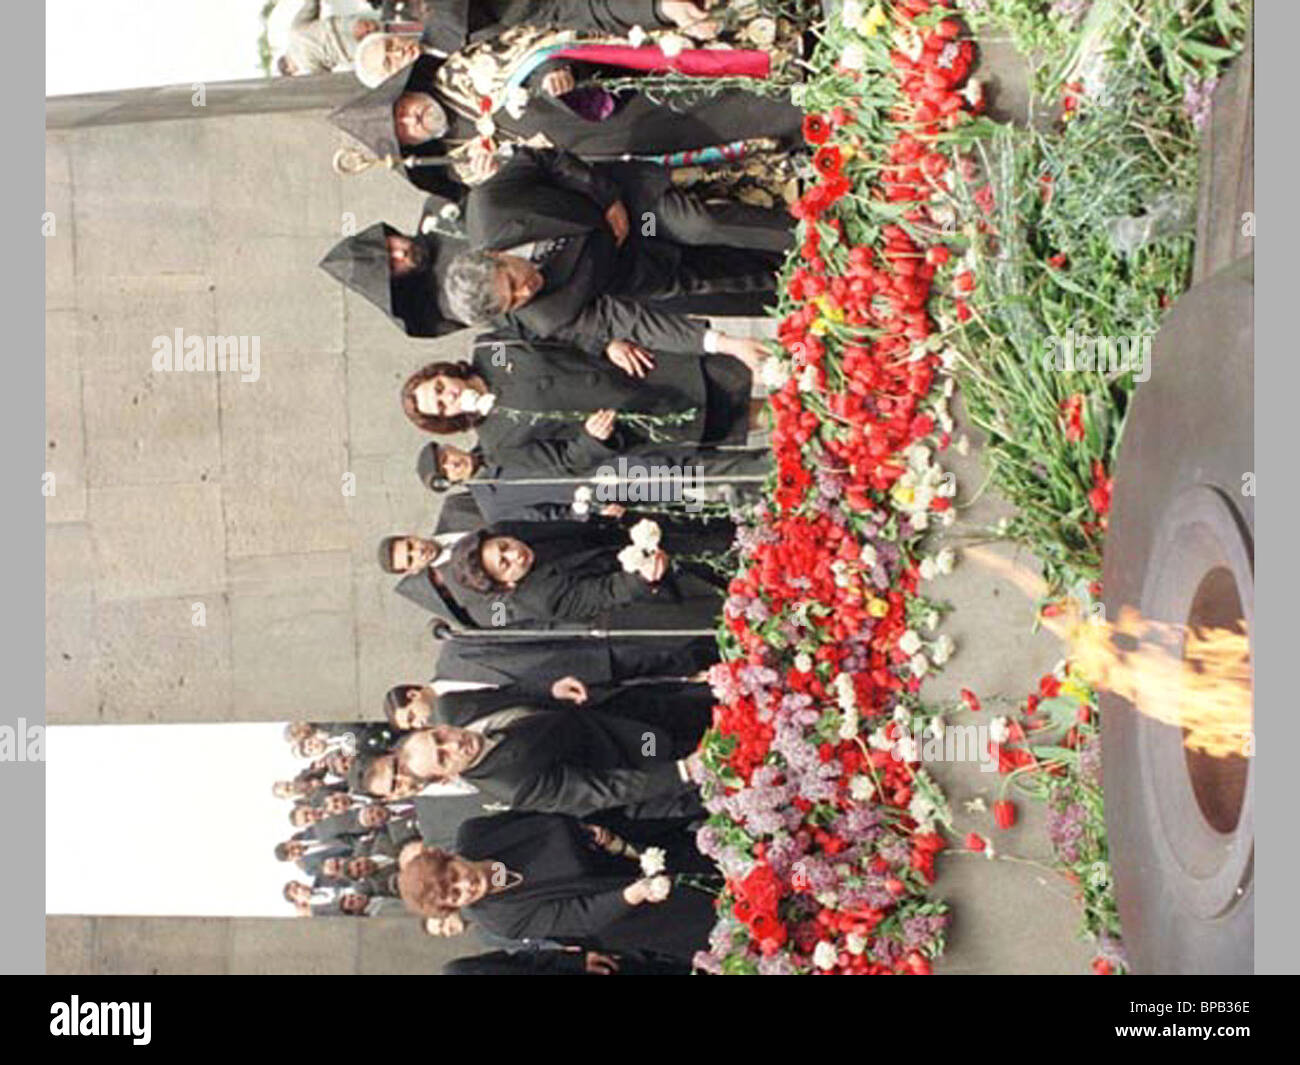 Armenia mourned 1.5 million victims of the 1915 genocide of Armenians - Stock Image